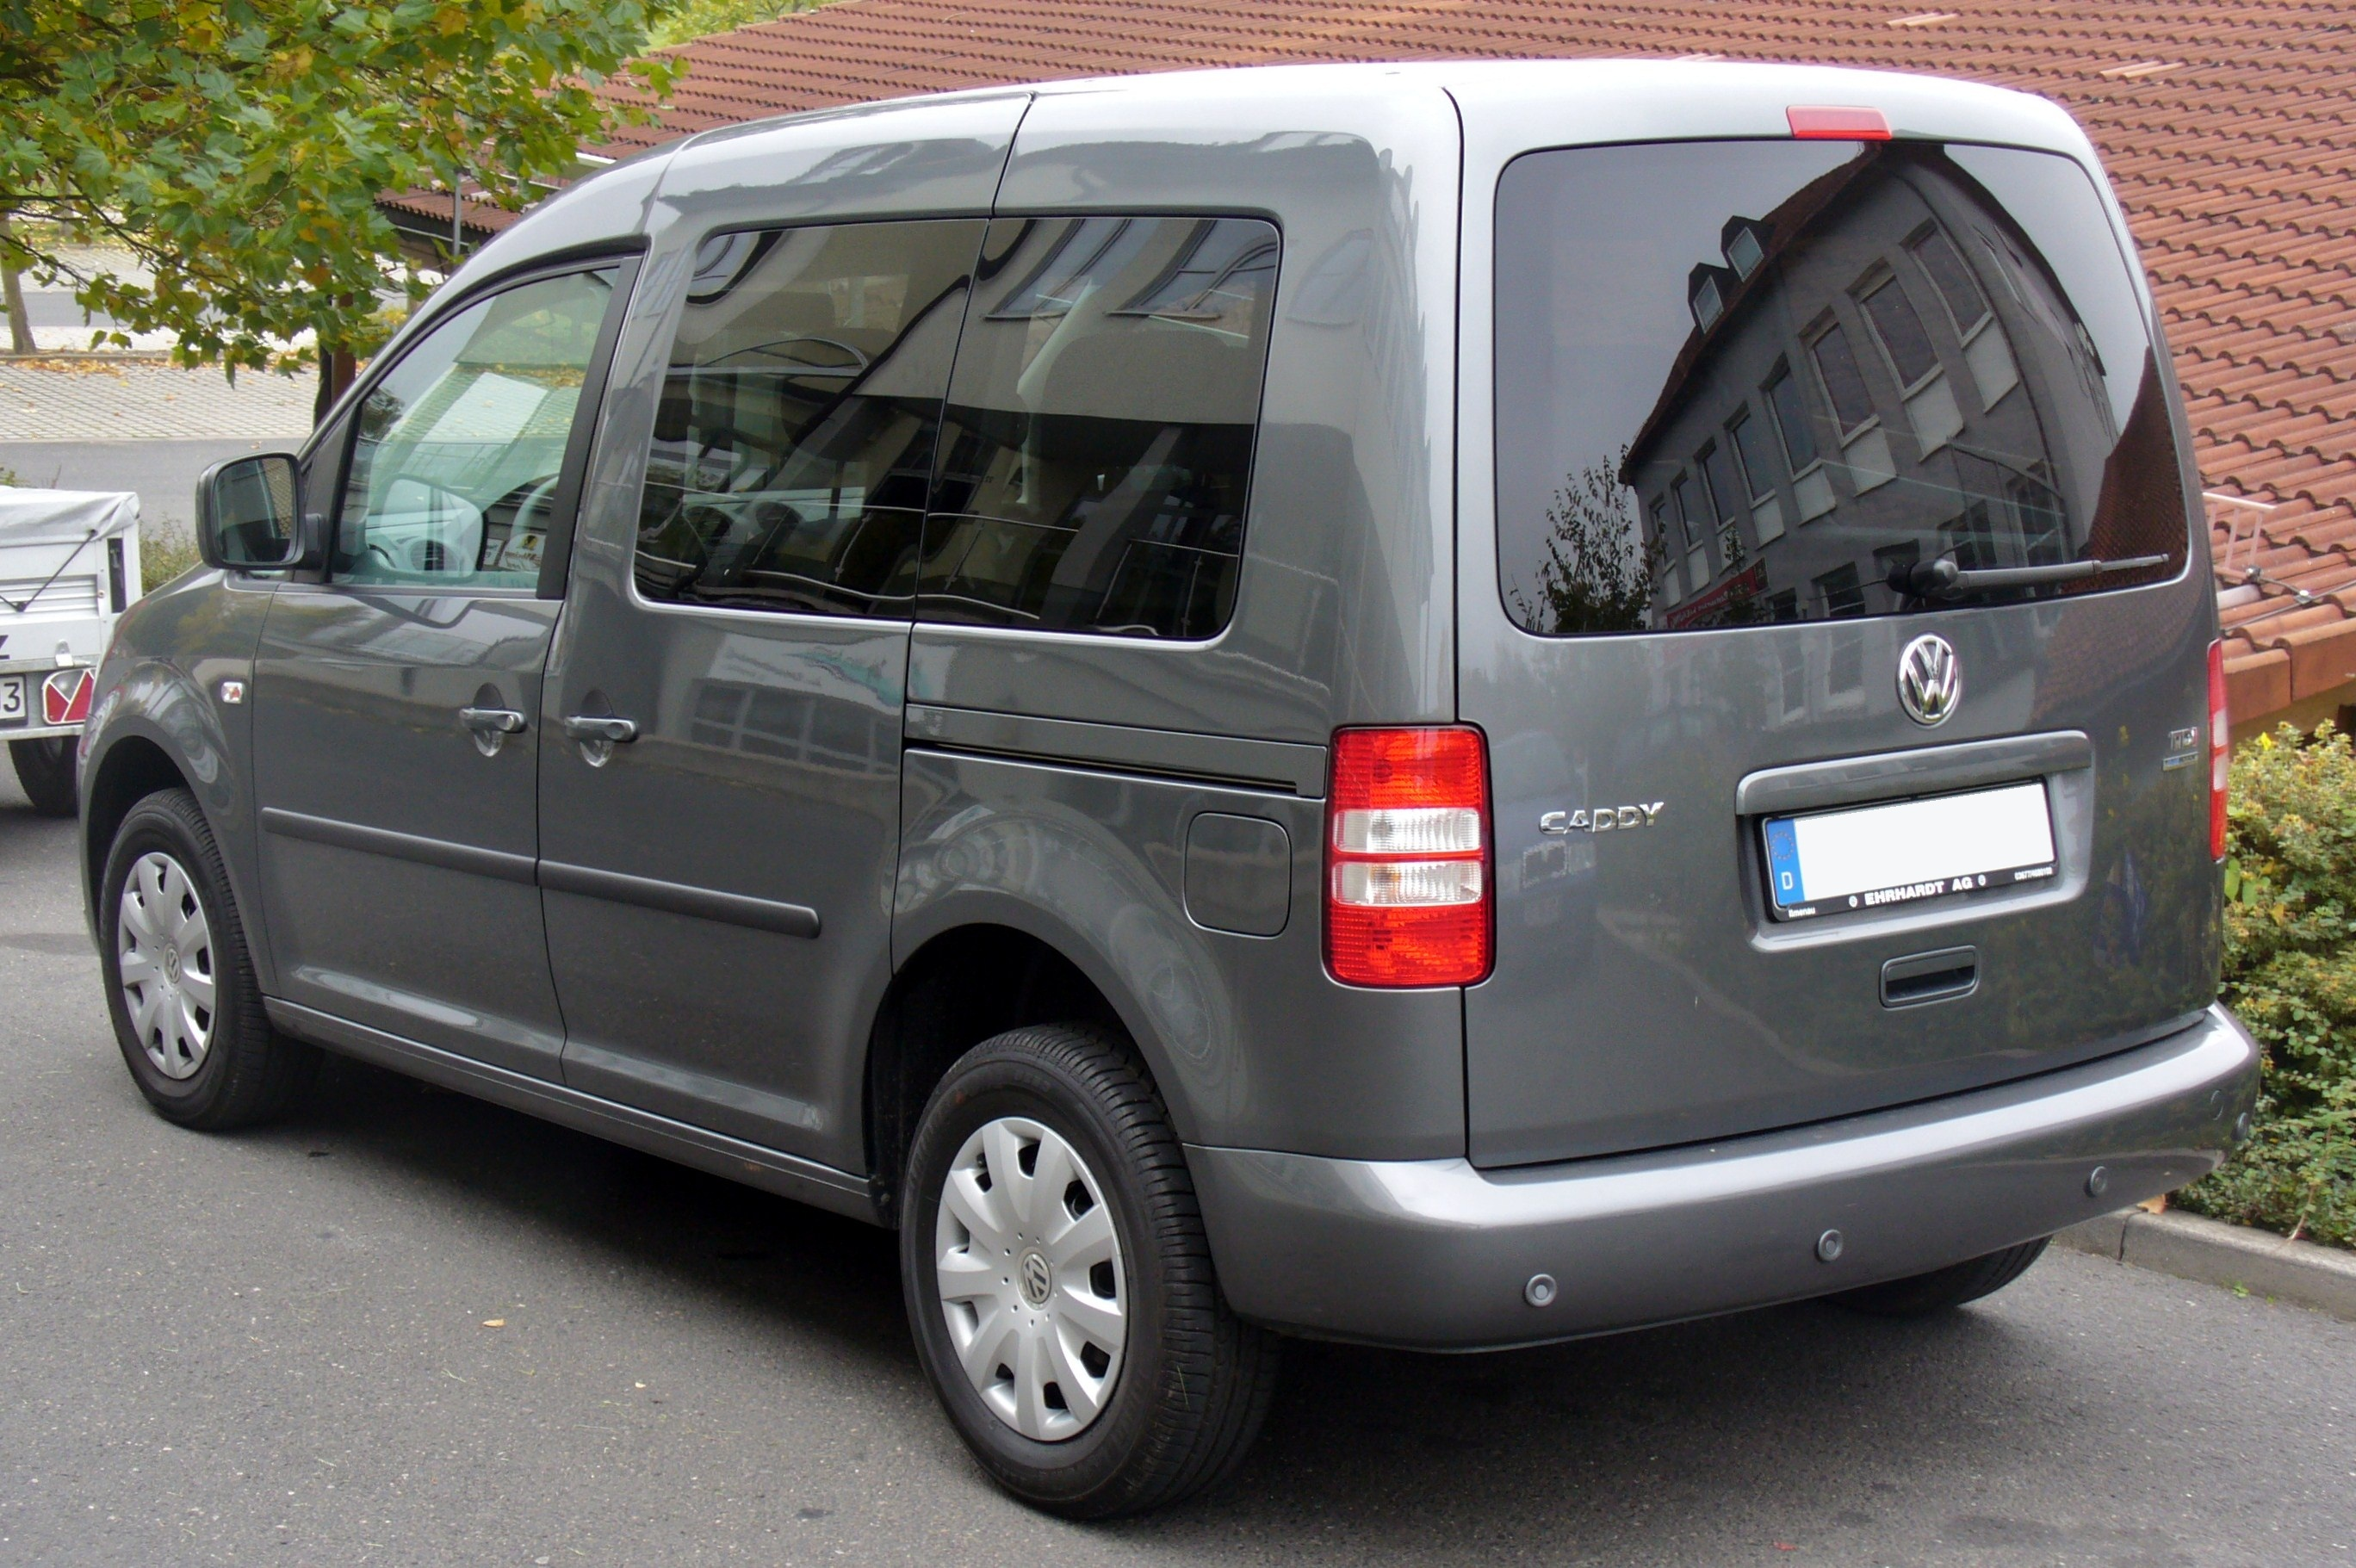 file vw caddy facelift 1 6 tdi bluemotion heck jpg wikimedia commons. Black Bedroom Furniture Sets. Home Design Ideas